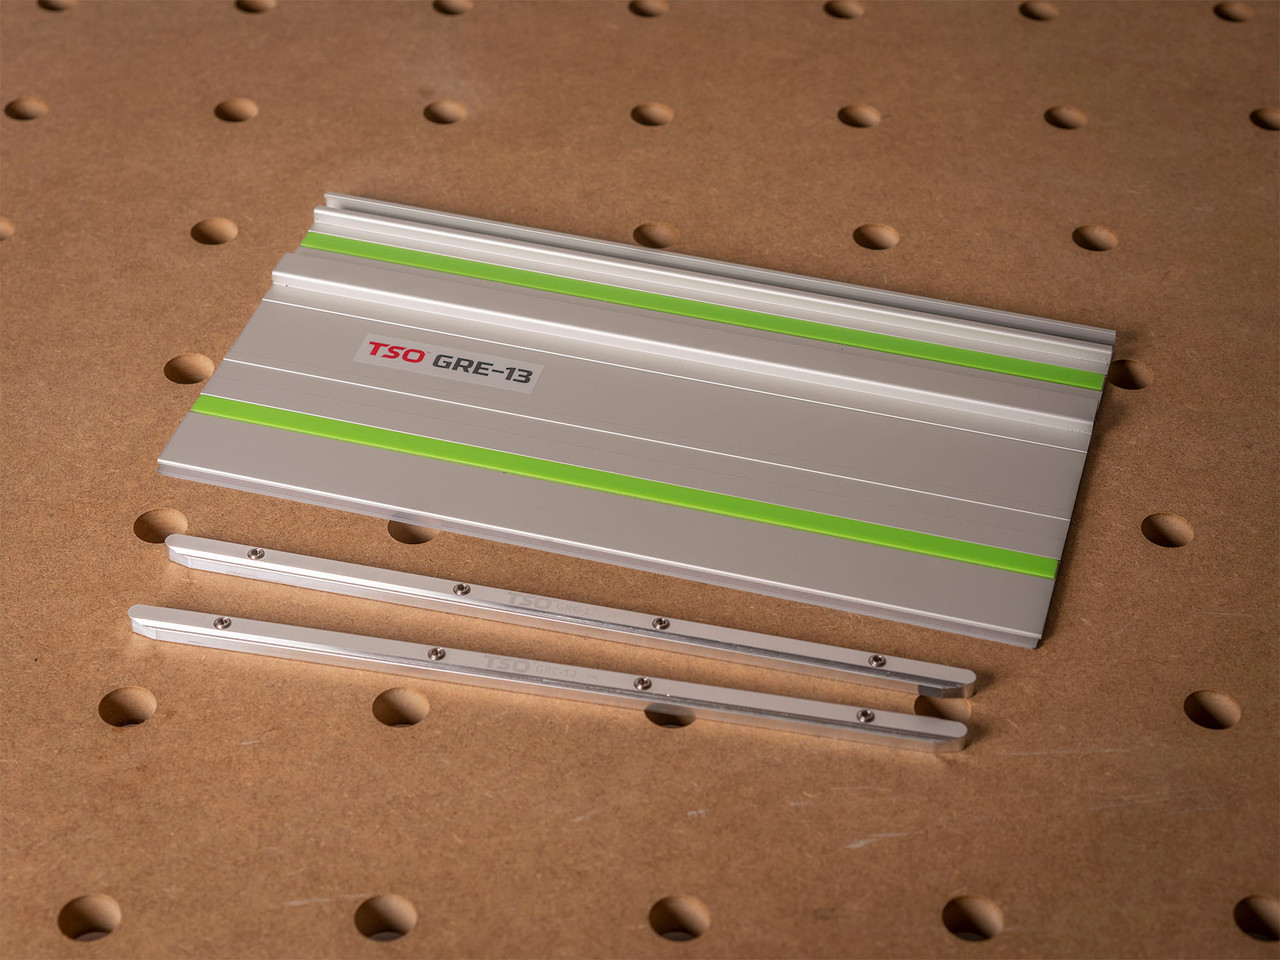 The complete GRE-13 package is shown here, with two GRC-12 self-aligning guide rail connectors.